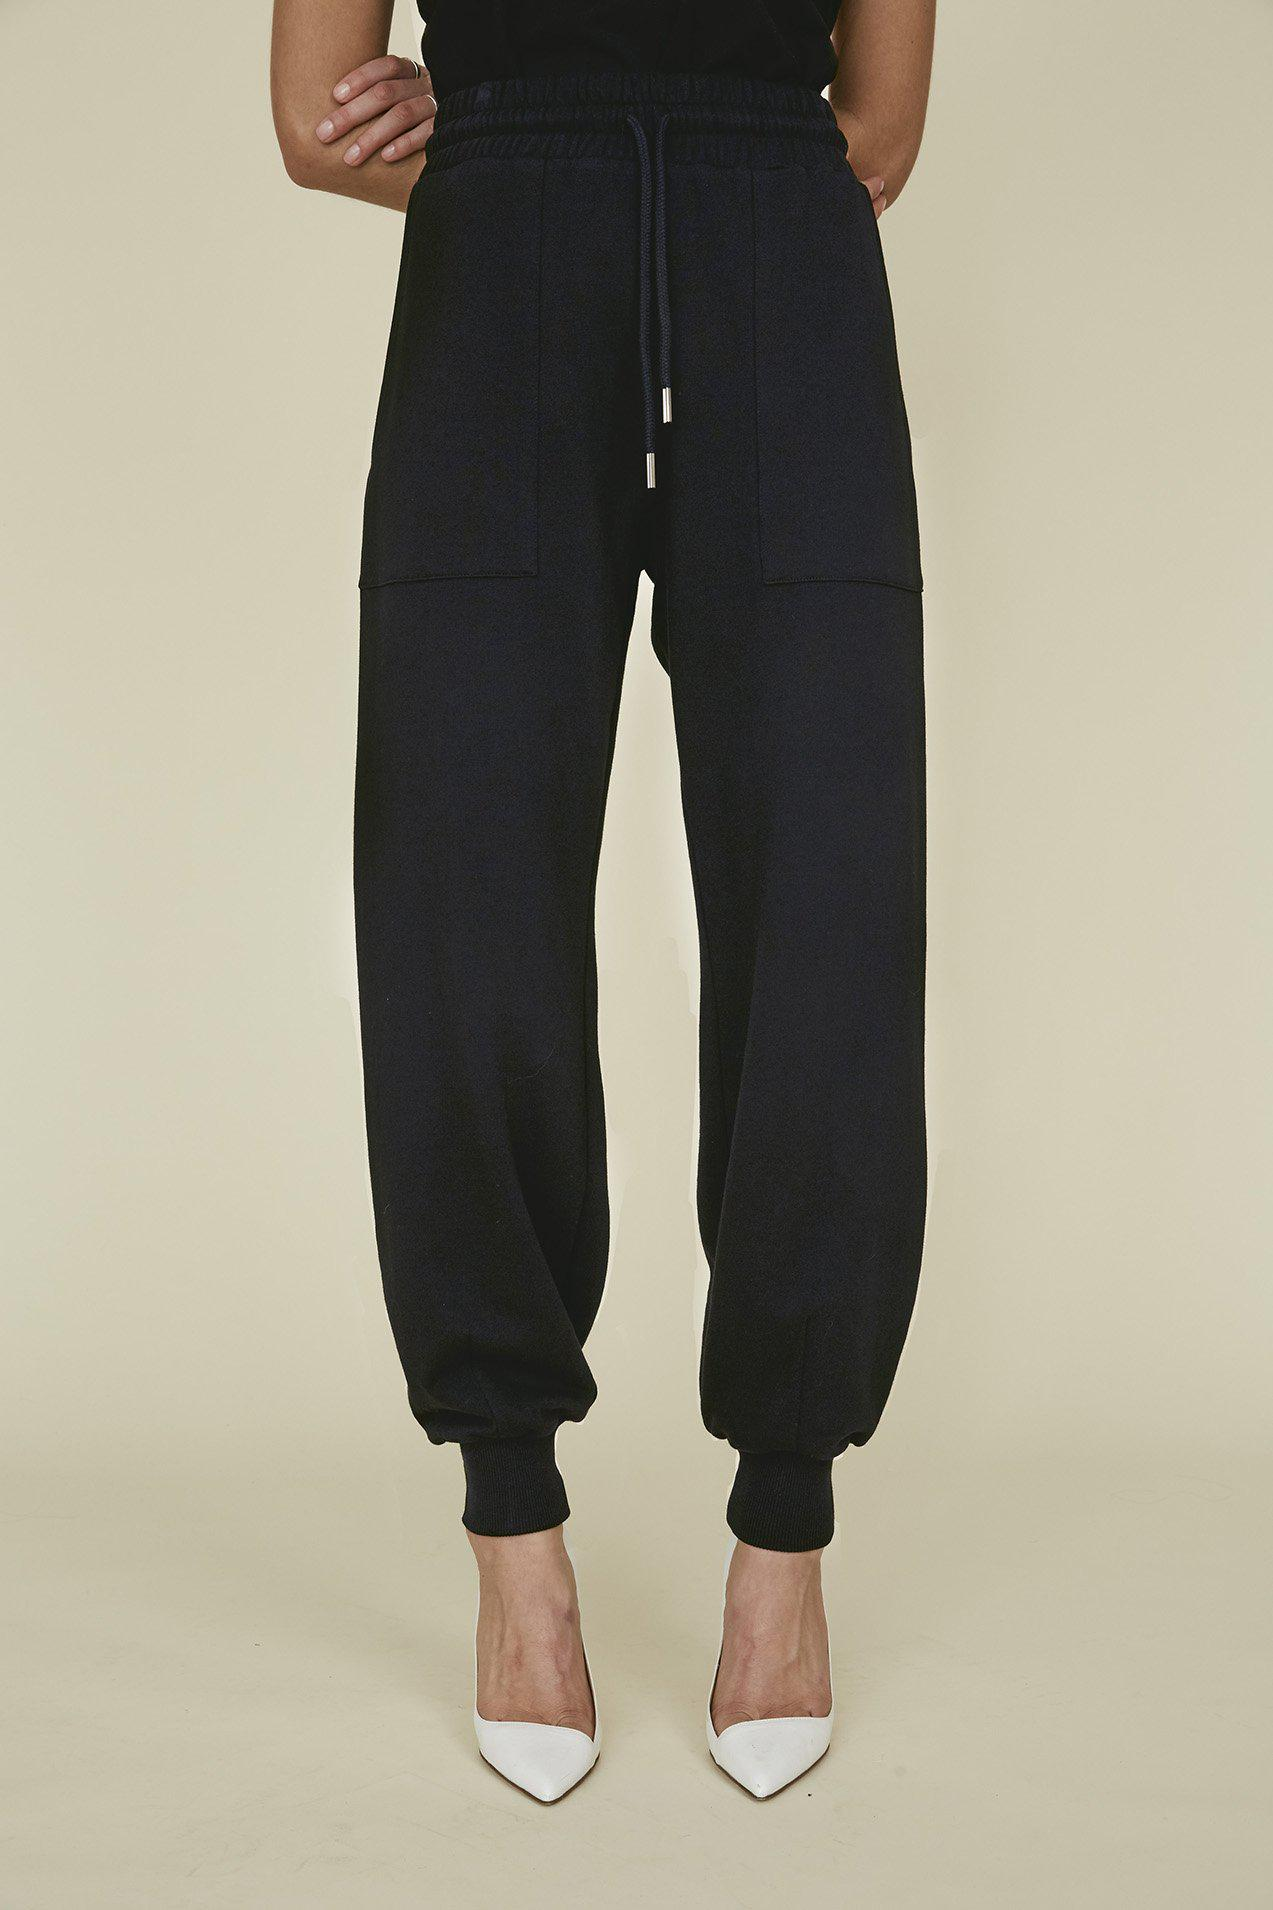 The Puff Jogger in Black